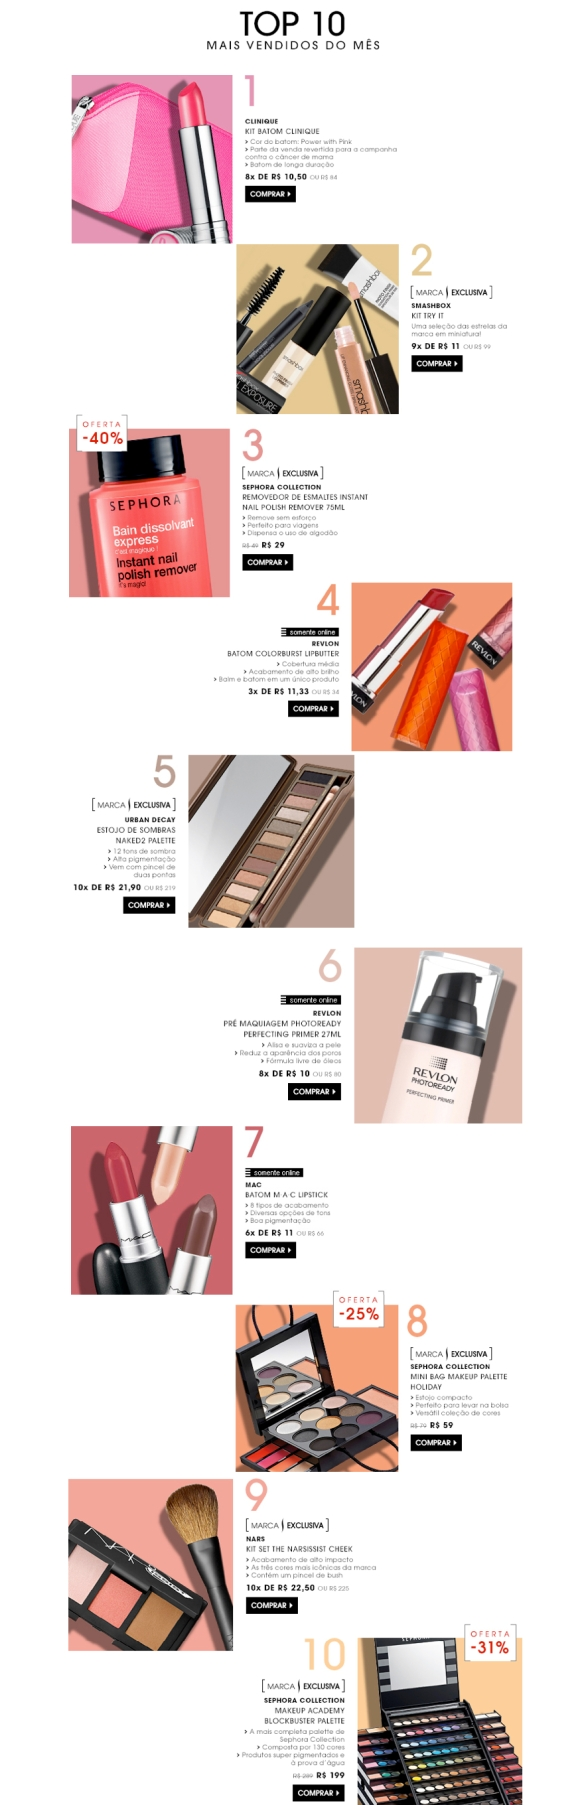 TOP 10 Sephora.001.001